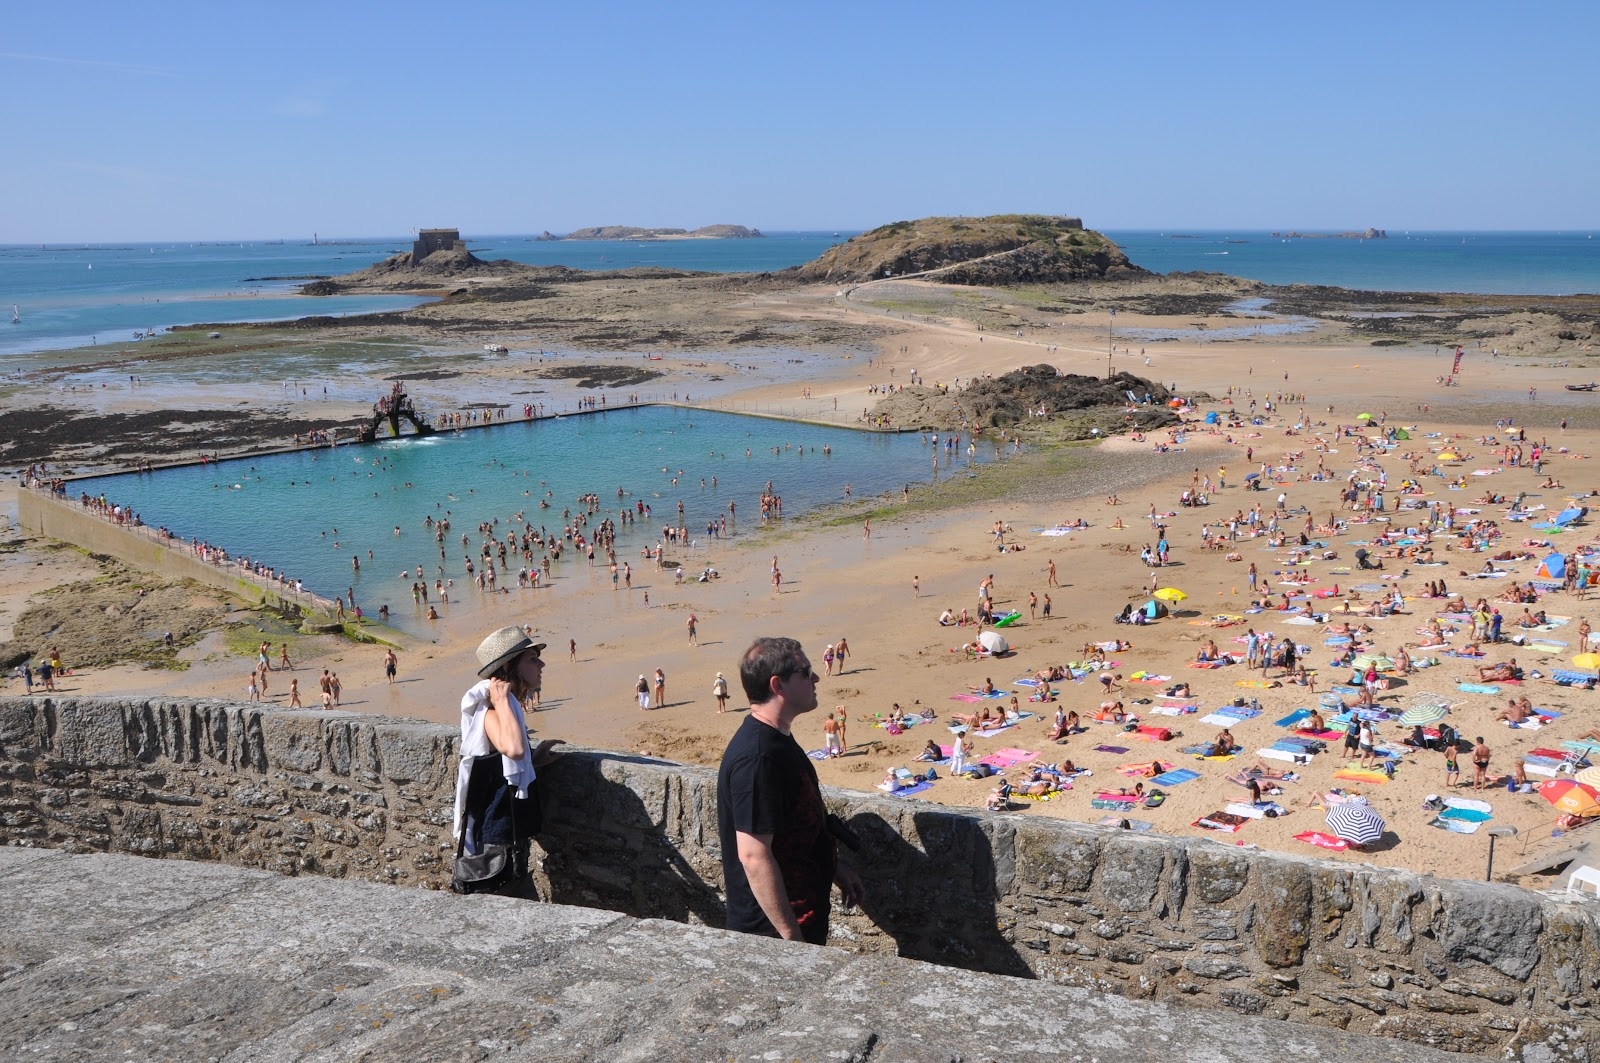 saint-milon plage du sillon public beach in france. Sandy beach filled with tourists, full swimming area and visitors sunbathing. Two tourists walking in foreground.